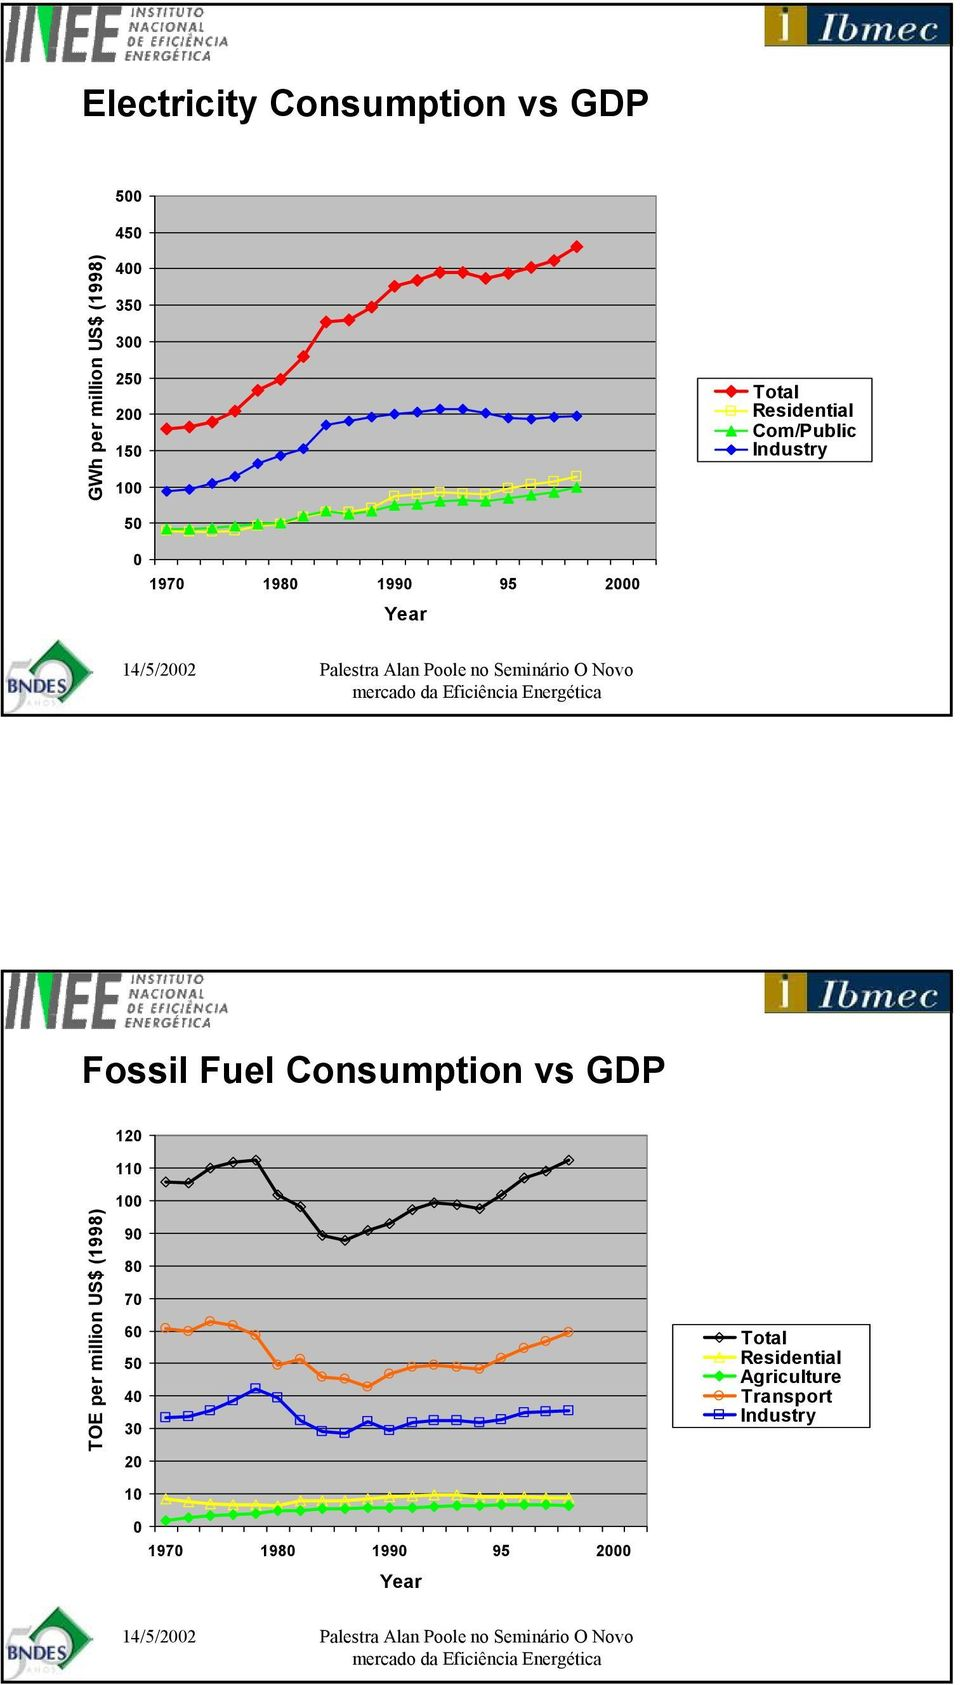 Fossil Fuel Consumption vs GDP 120 110 TOE per million US$ (1998) 100 90 80 70 60 50 40 30 20 10 0 1970 1980 1990 95 2000 Year